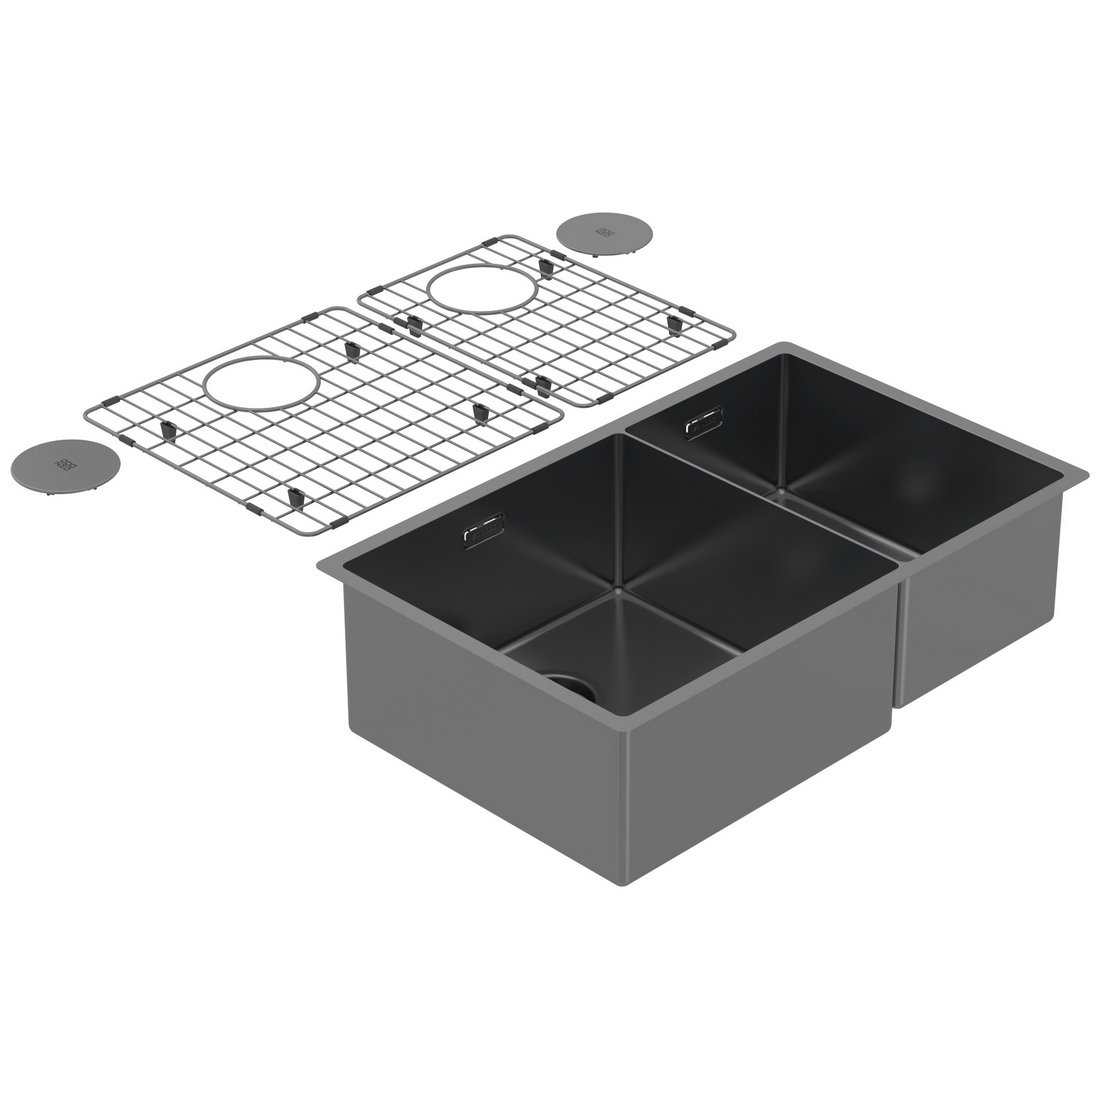 704 x 440 x 200mm Double Bowl Undermount Kitchen Sink Cayman Black PearlArc Finish